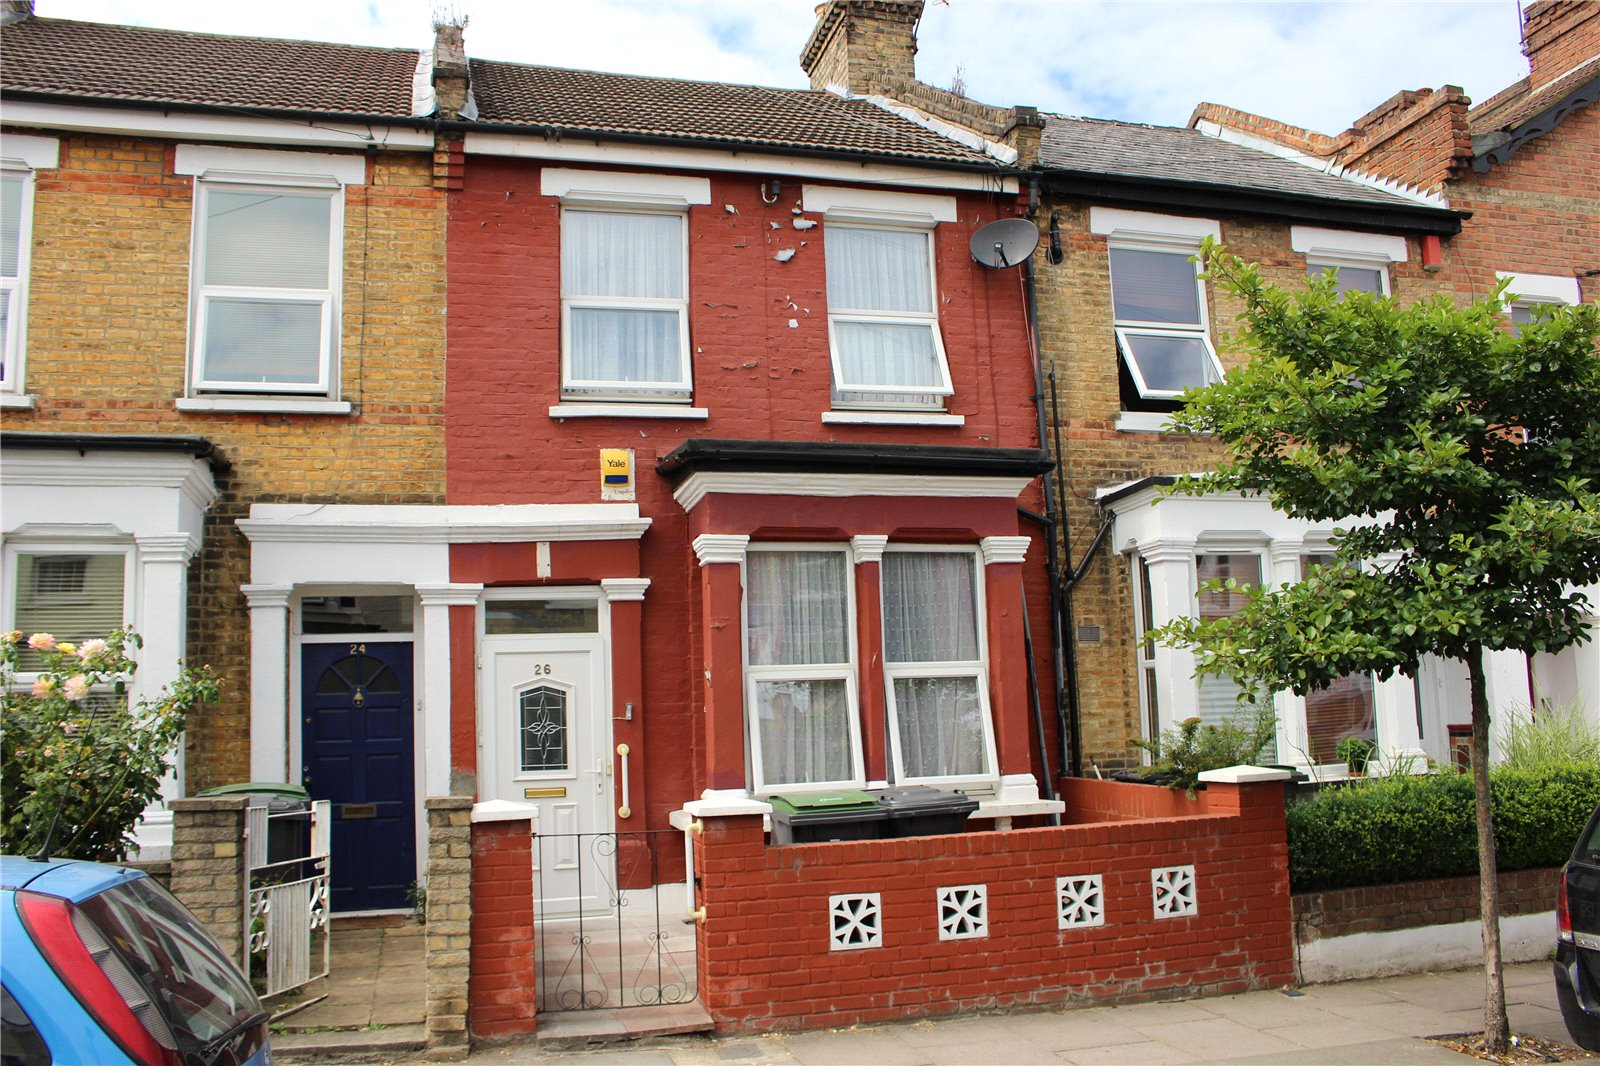 3 Bedrooms Terraced House for sale in Queens Road Bounds Green London N11